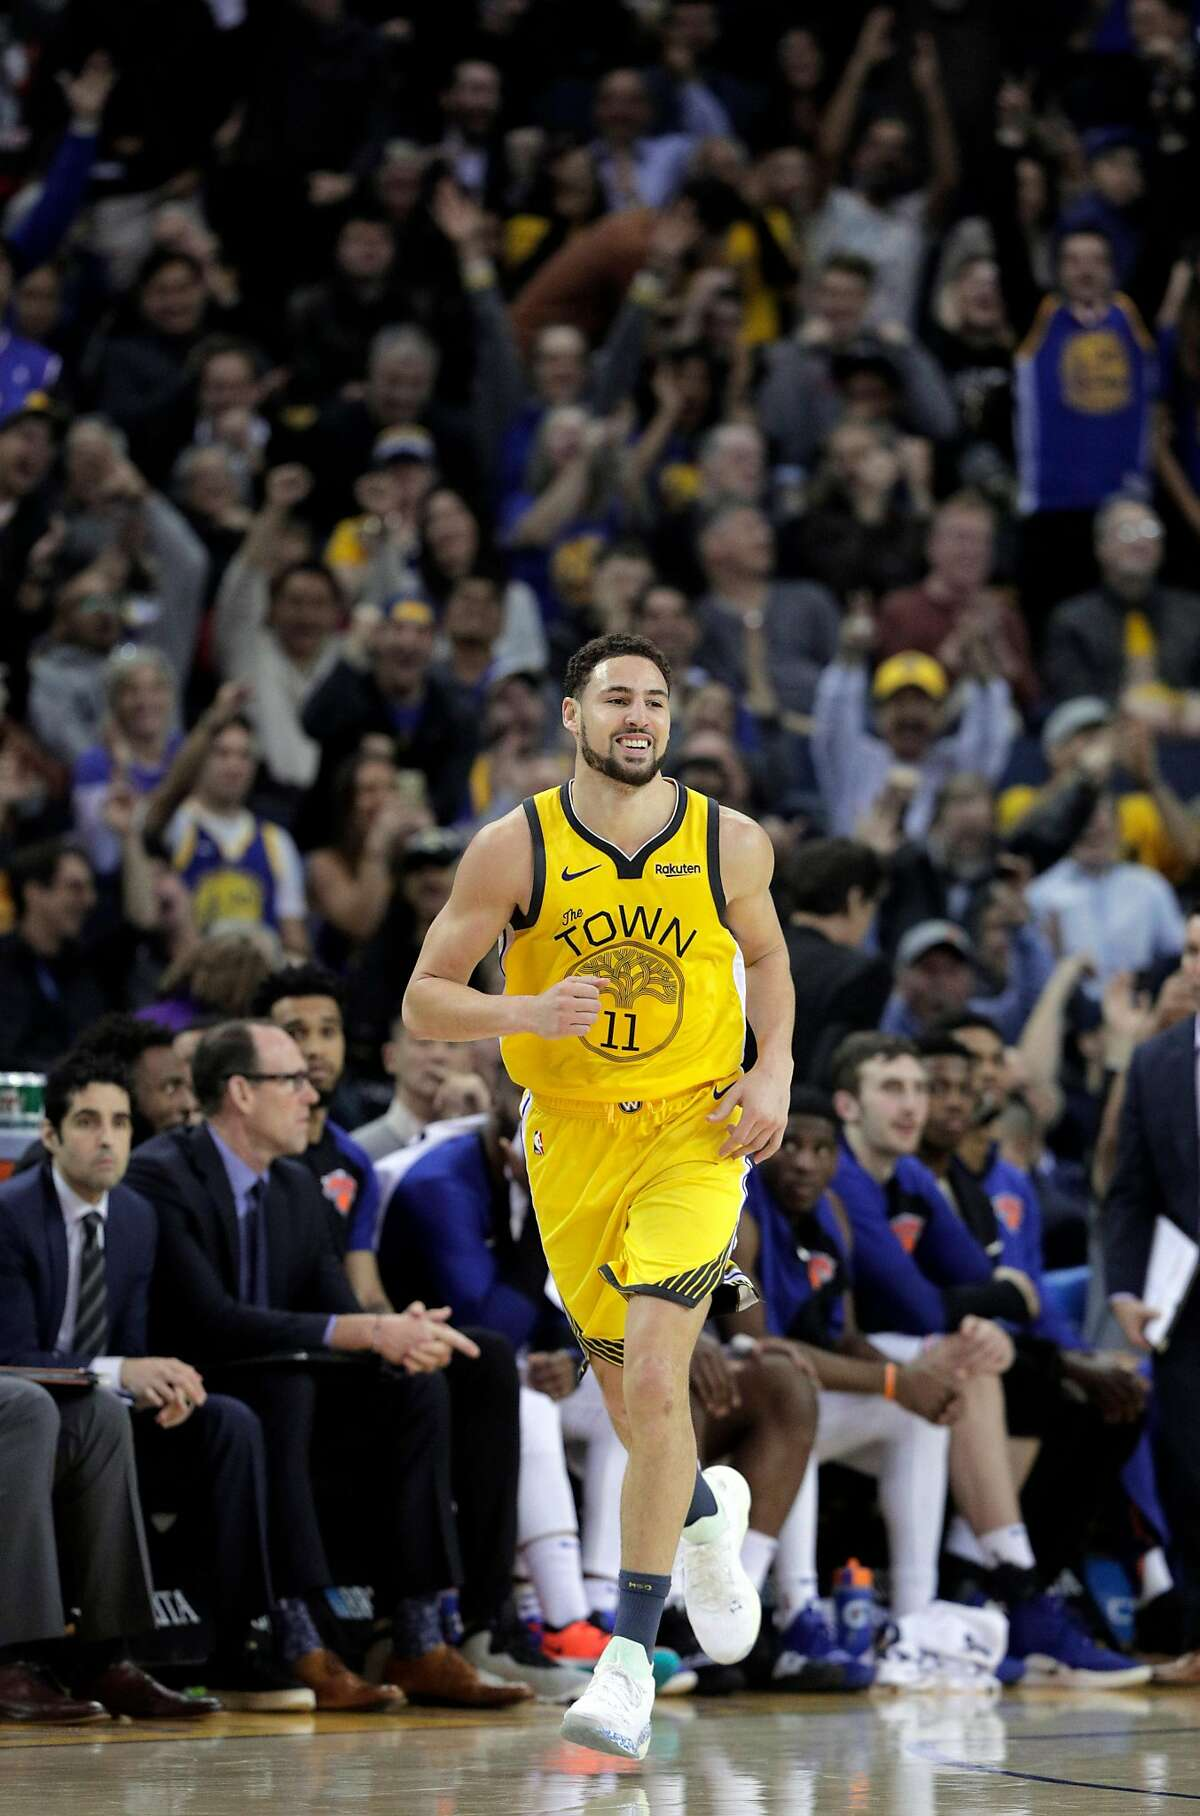 Klay Thompson (11) runs back up court with the fans cheering after hitting a three point shot late in the second half as the Golden State Warriors played the New York Knicks at Oracle Arena in Oakland, Calif., on Tuesday, January 8, 2019.